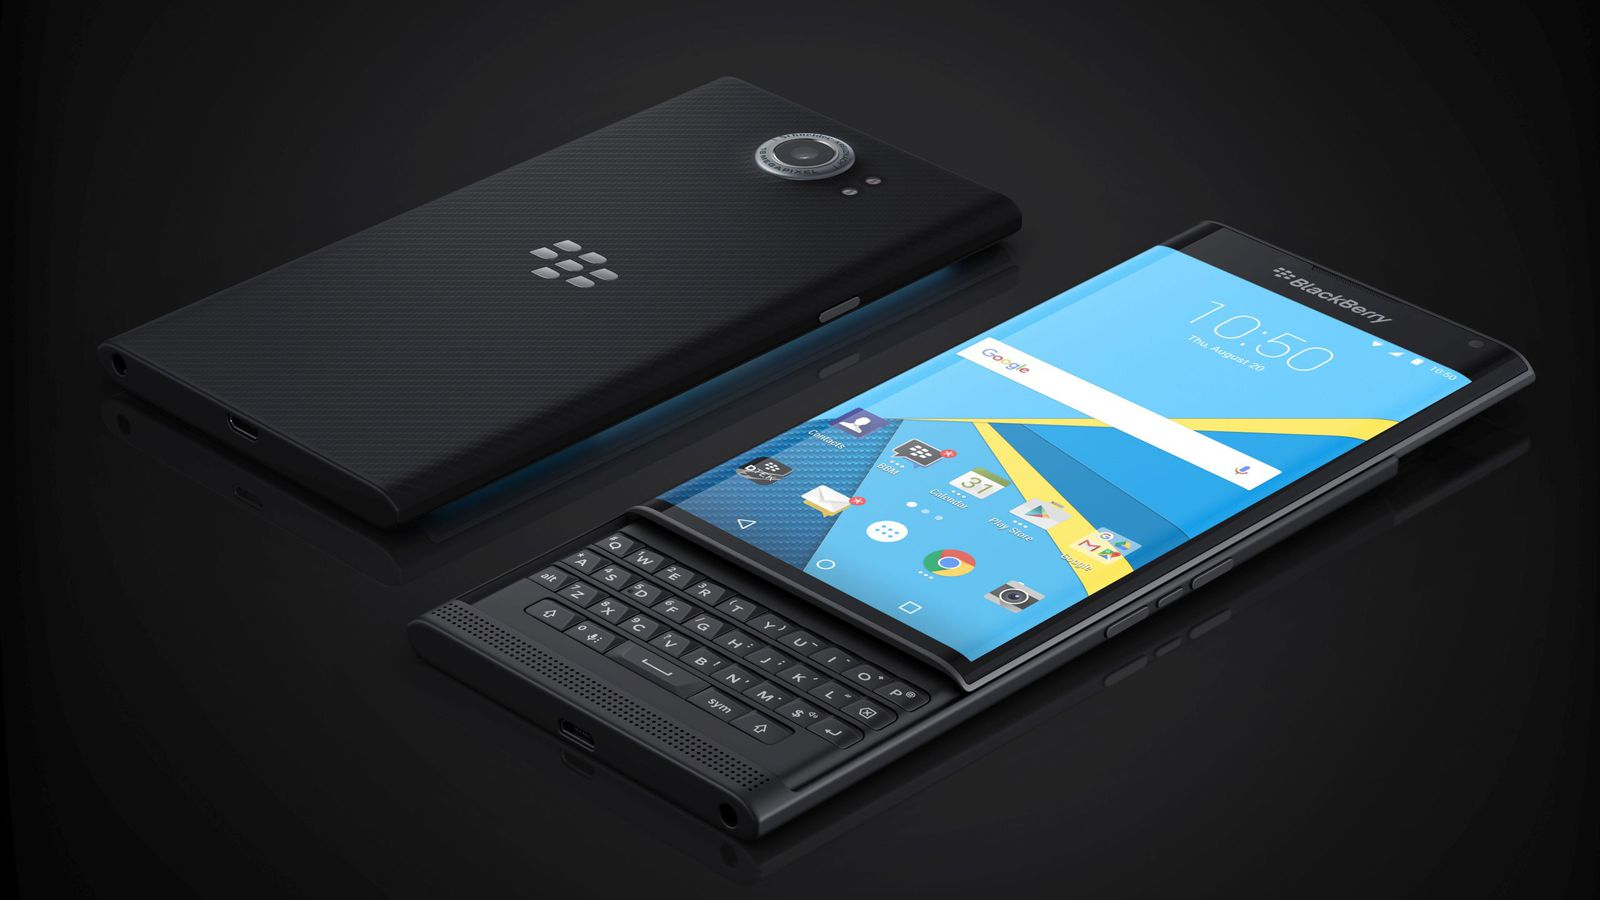 Photo of BlackBerry's New come back by Keyboard comfort